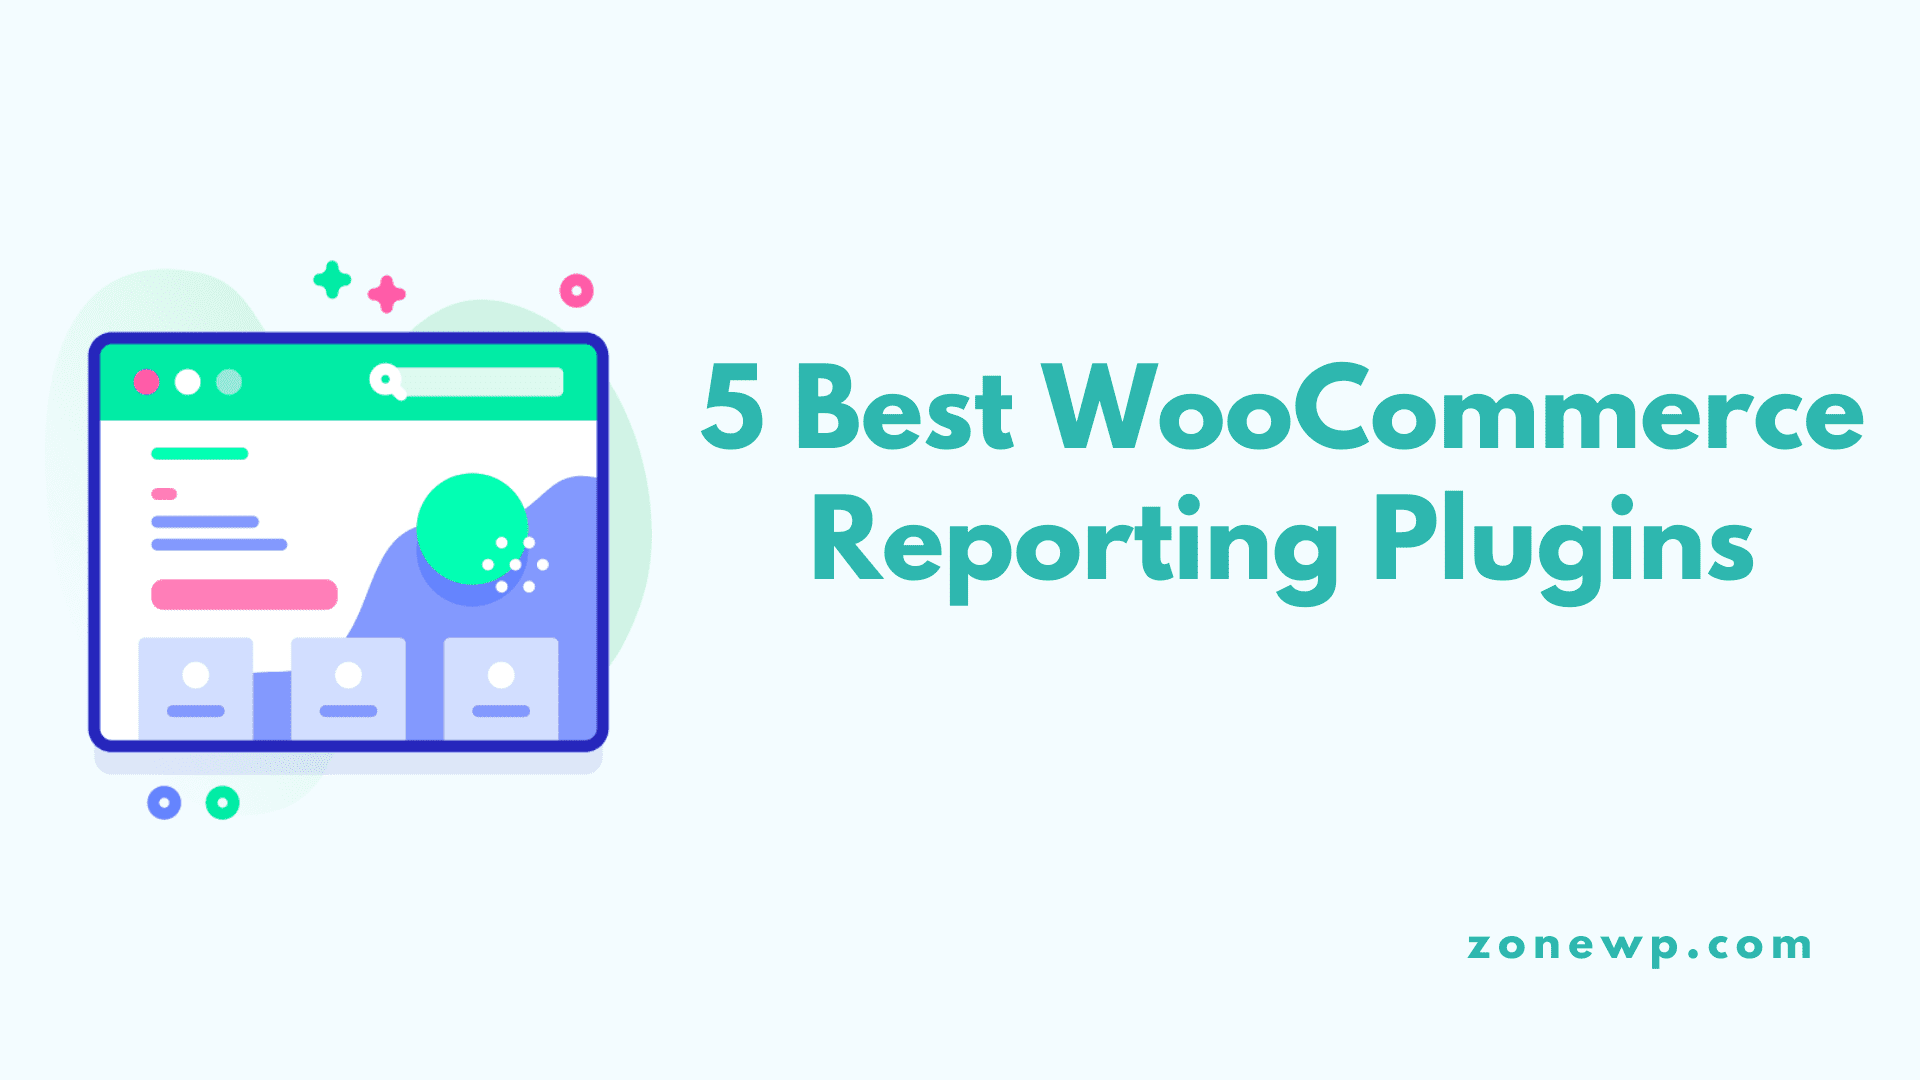 Best WooCommerce Reporting Plugins